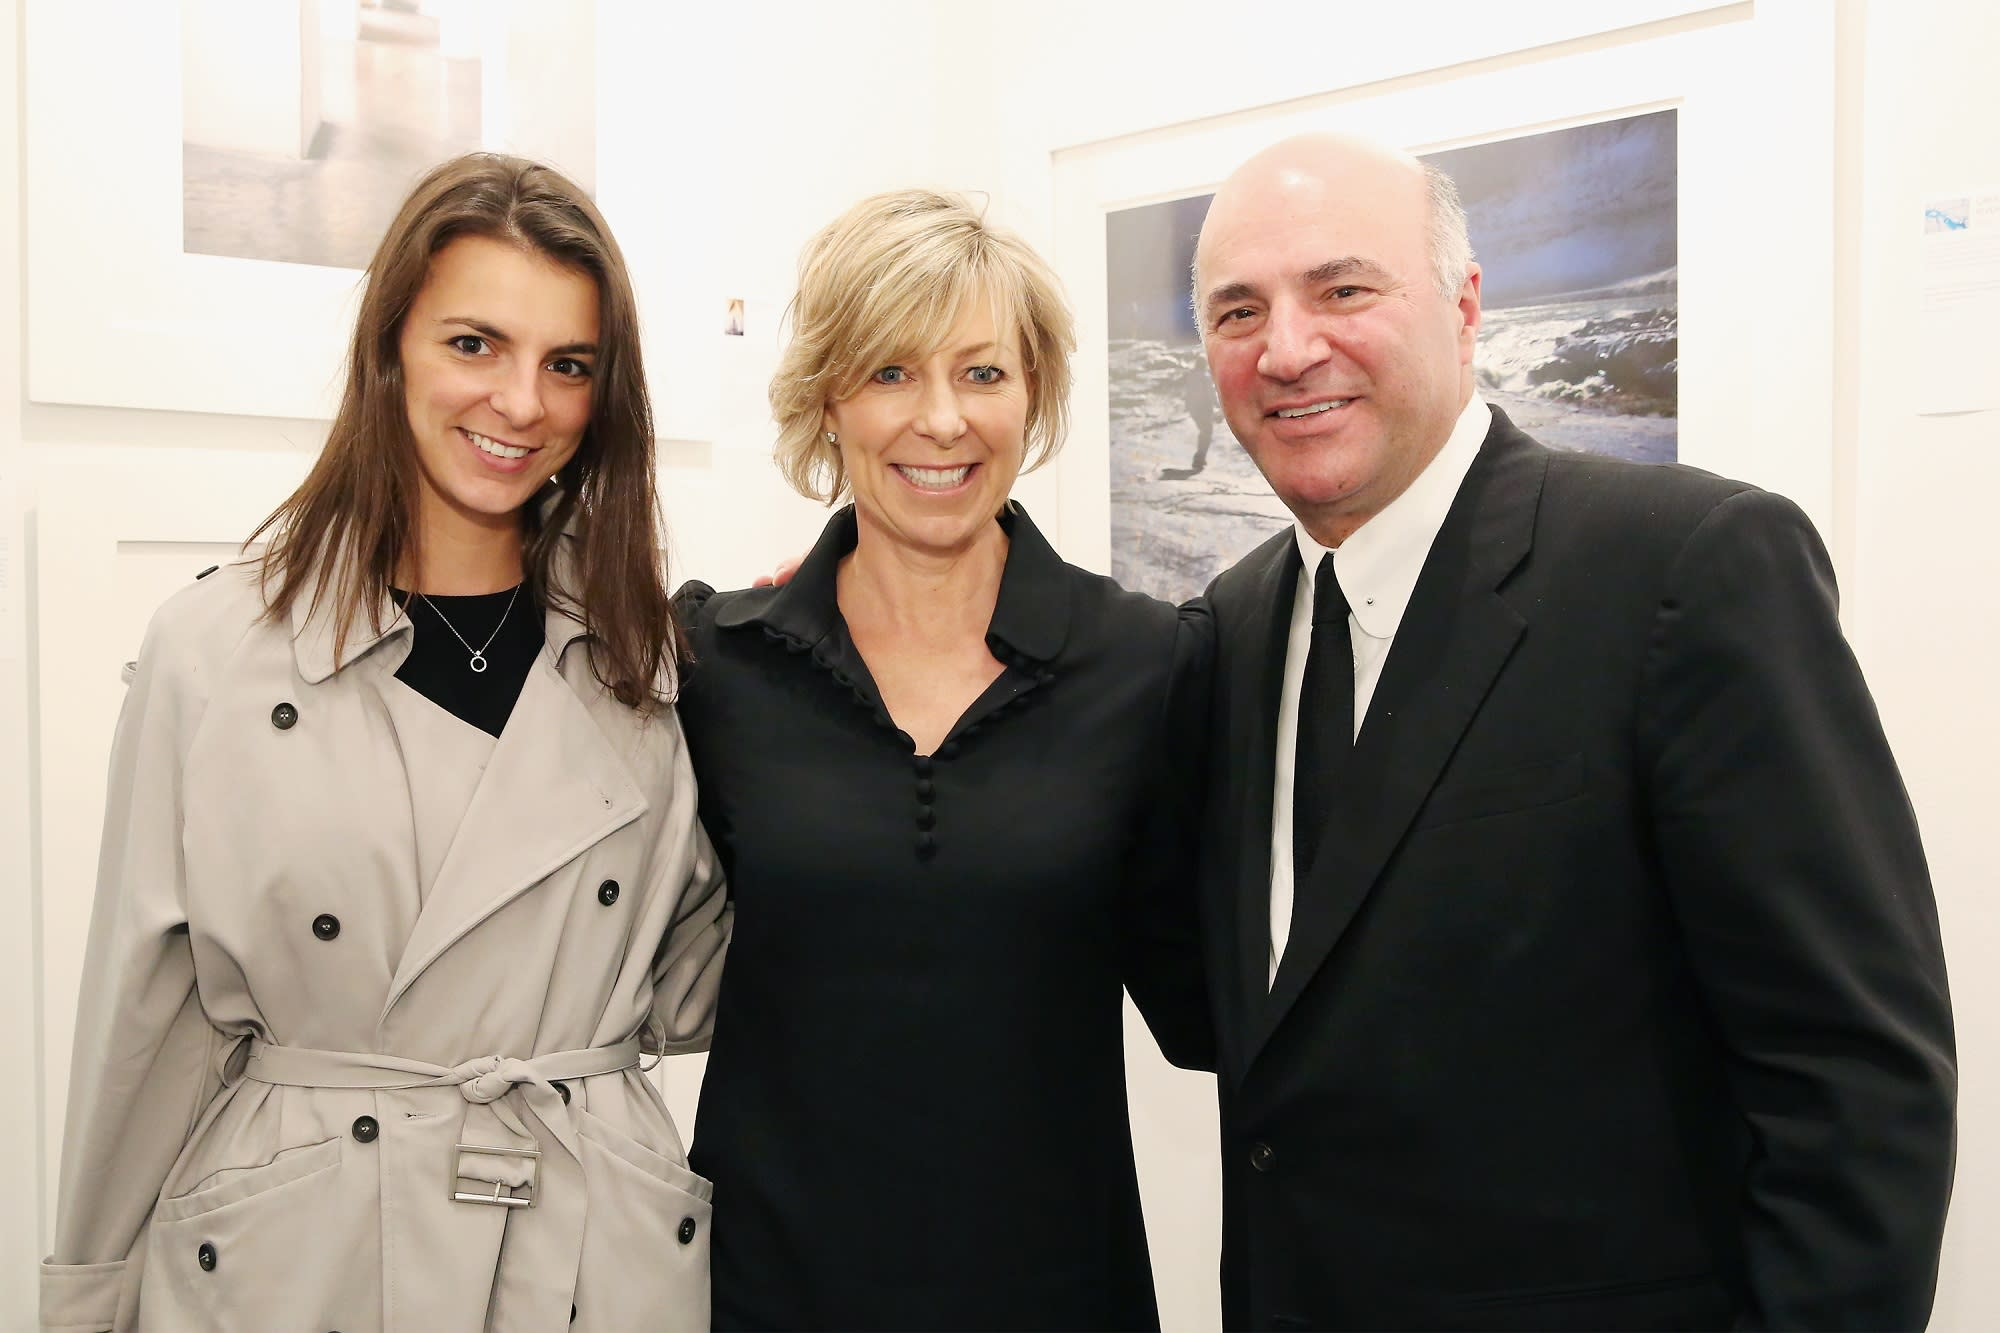 This is the advice Kevin O'Leary gave his own daughter when she was job hunting after college